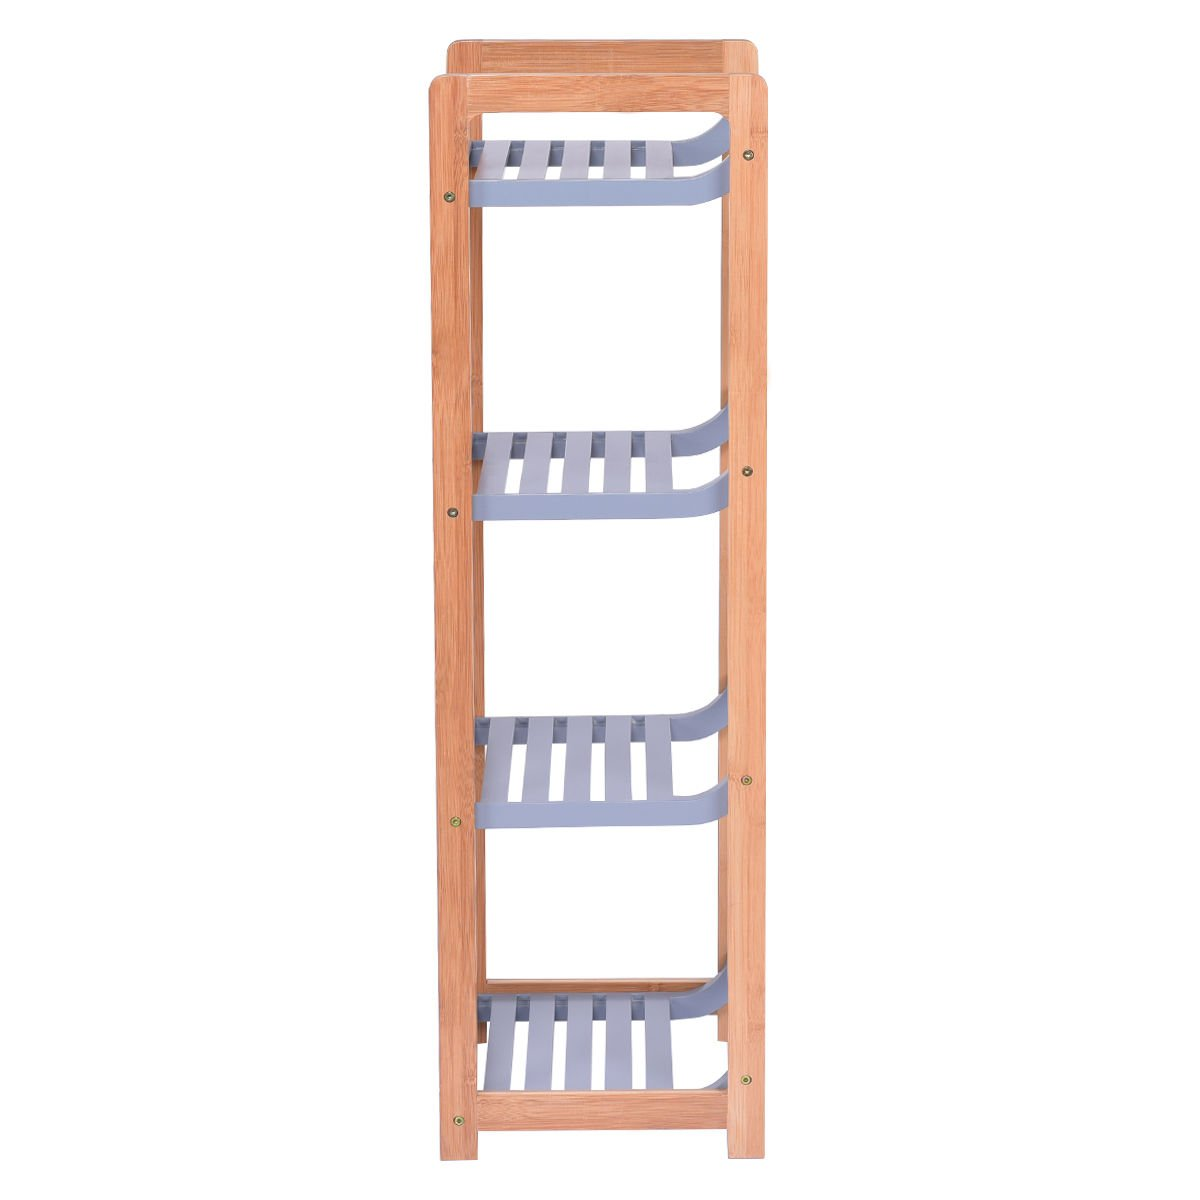 totoshop Multifunction Storage Tower Rack Shelving Shelf Units Stand Bamboo New 4 Tier by totoshop (Image #4)